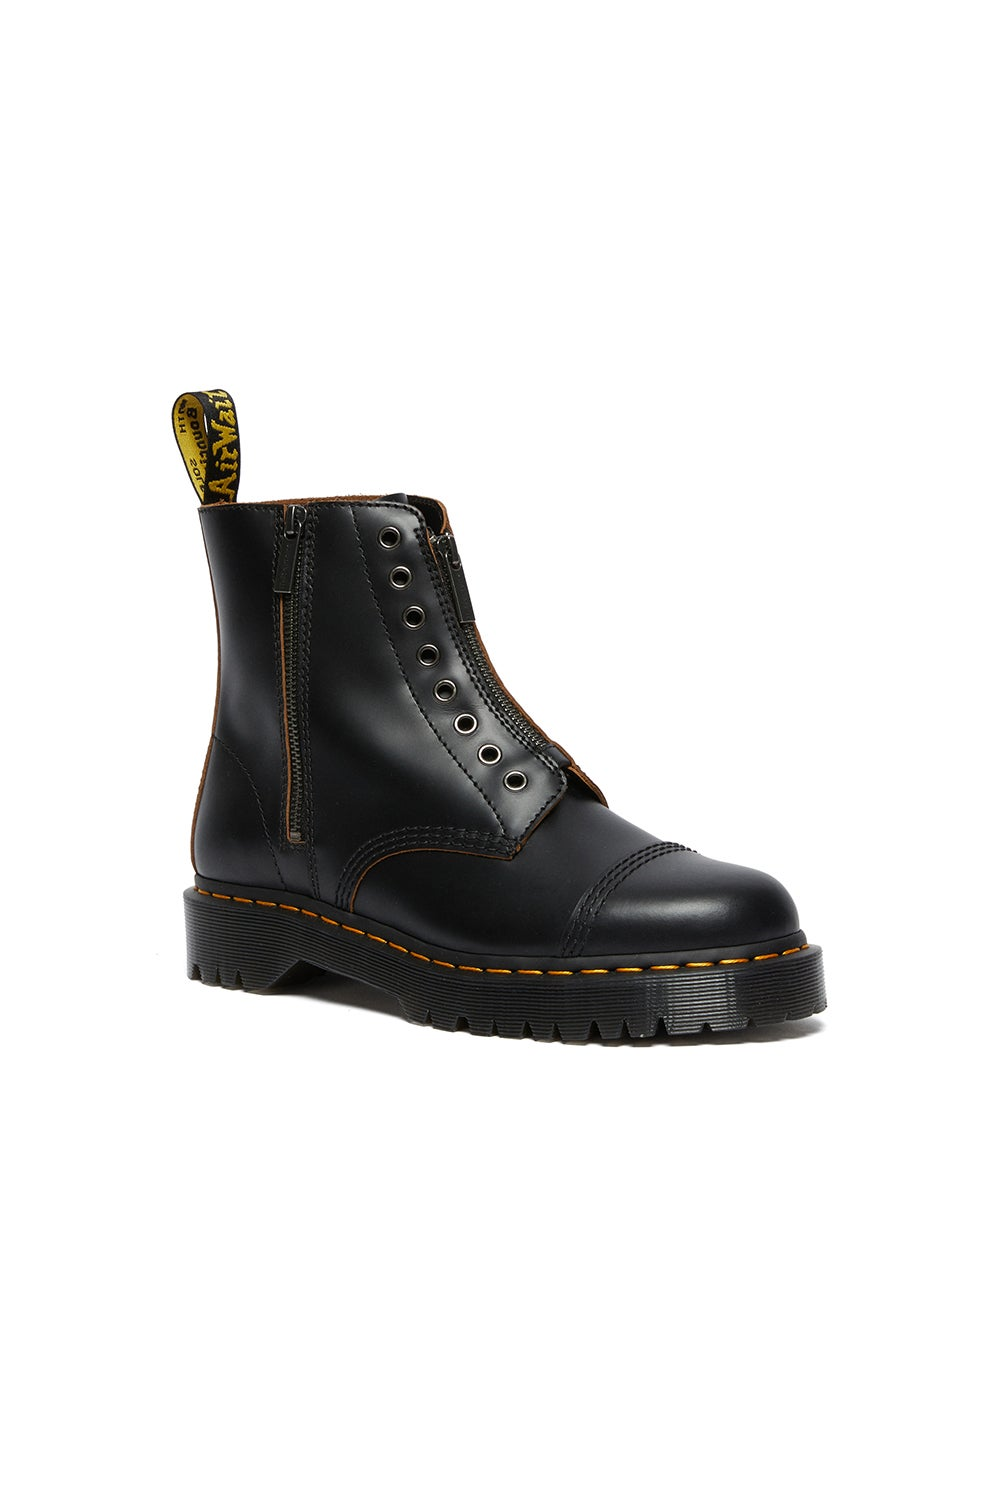 Dr. Martens 1460 LL Bex 8 Eye Boot Vintage Smooth Black